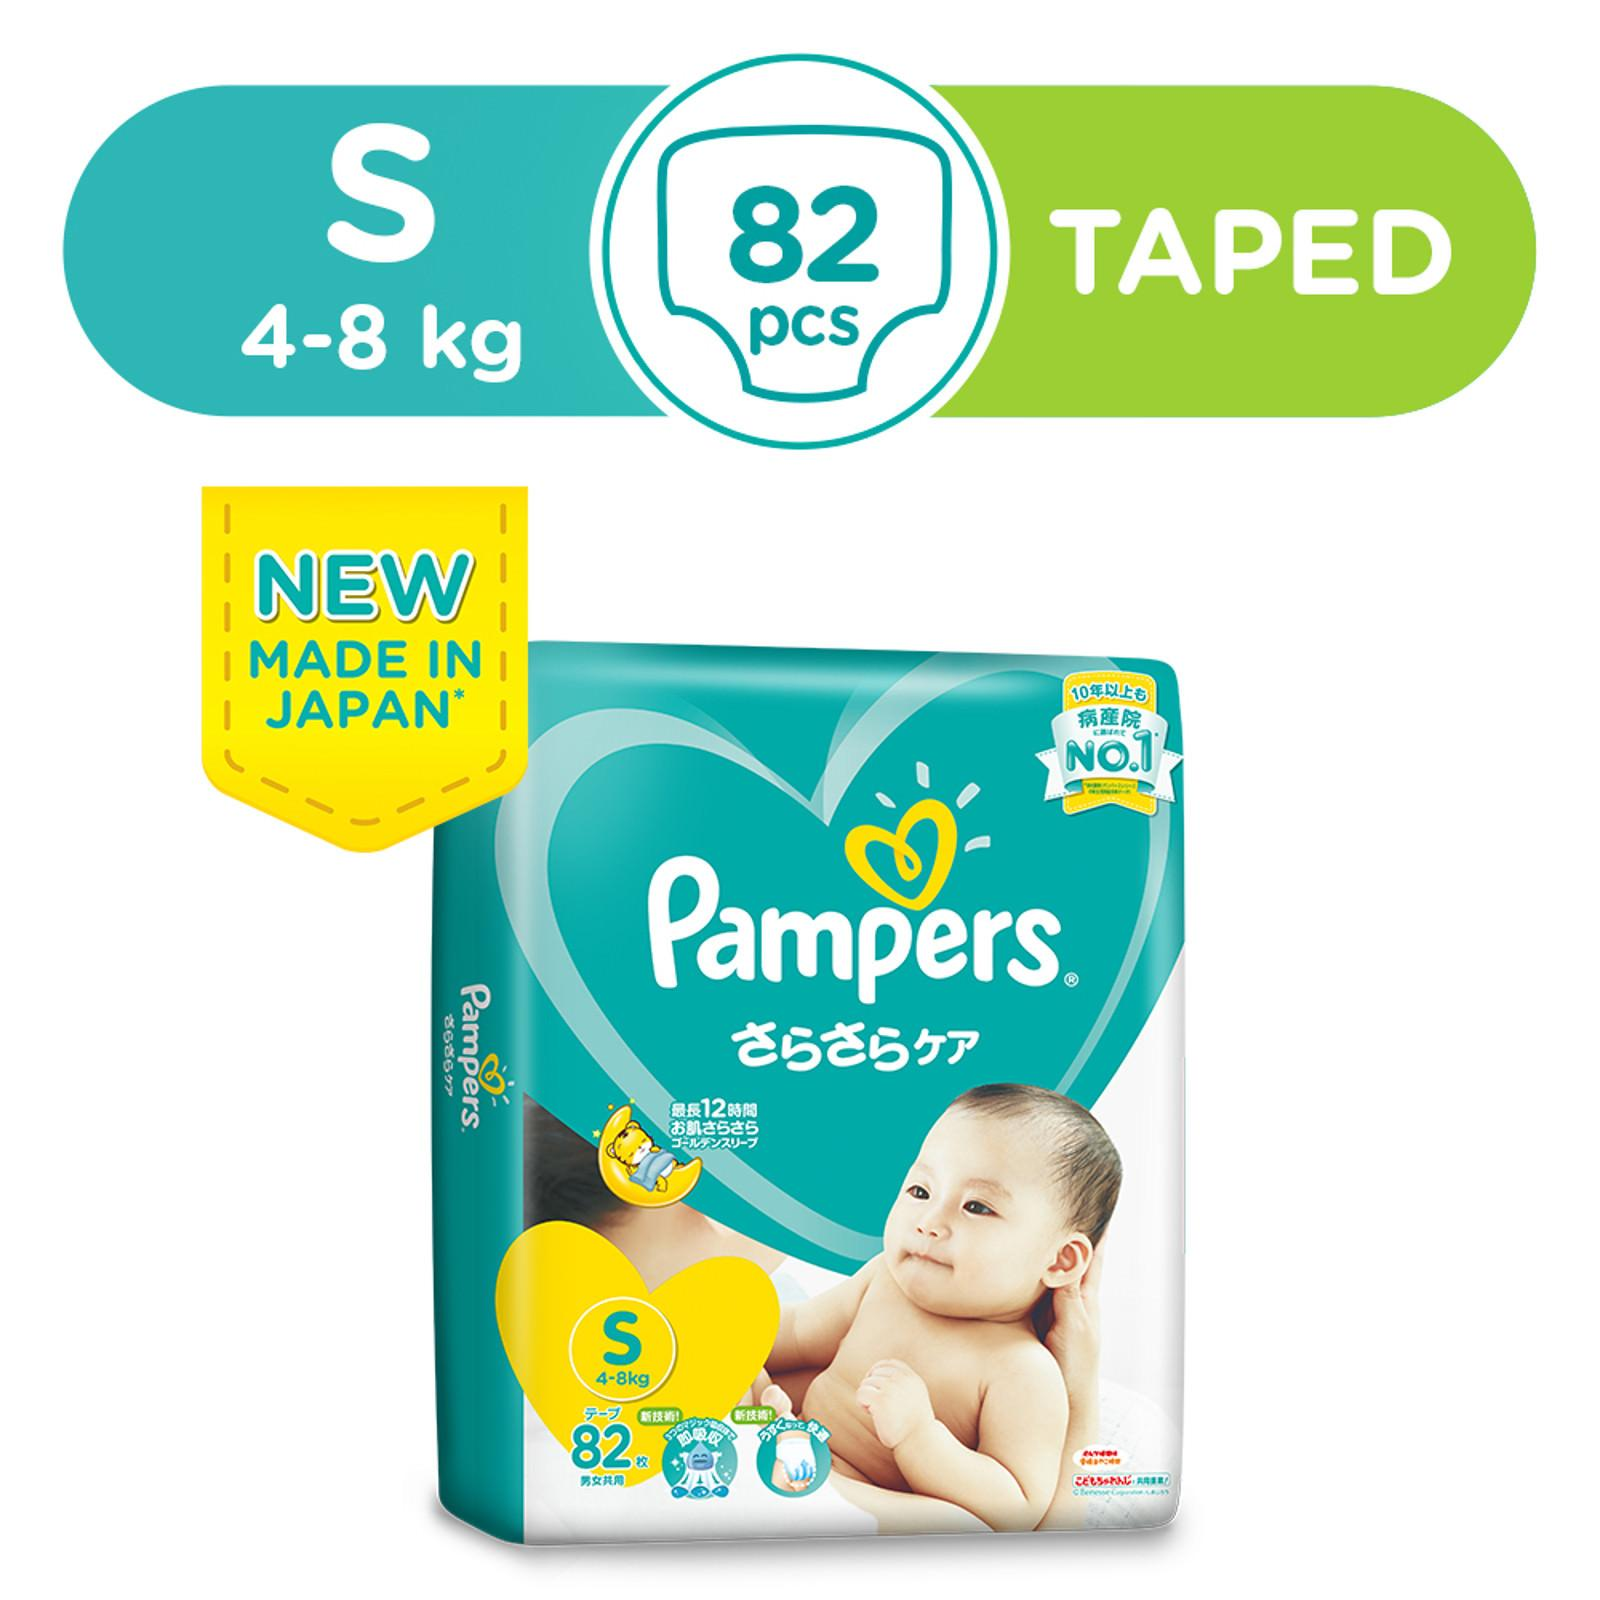 Pampers Baby Dry Diapers Small 82s (4-8kg) x 4 packs